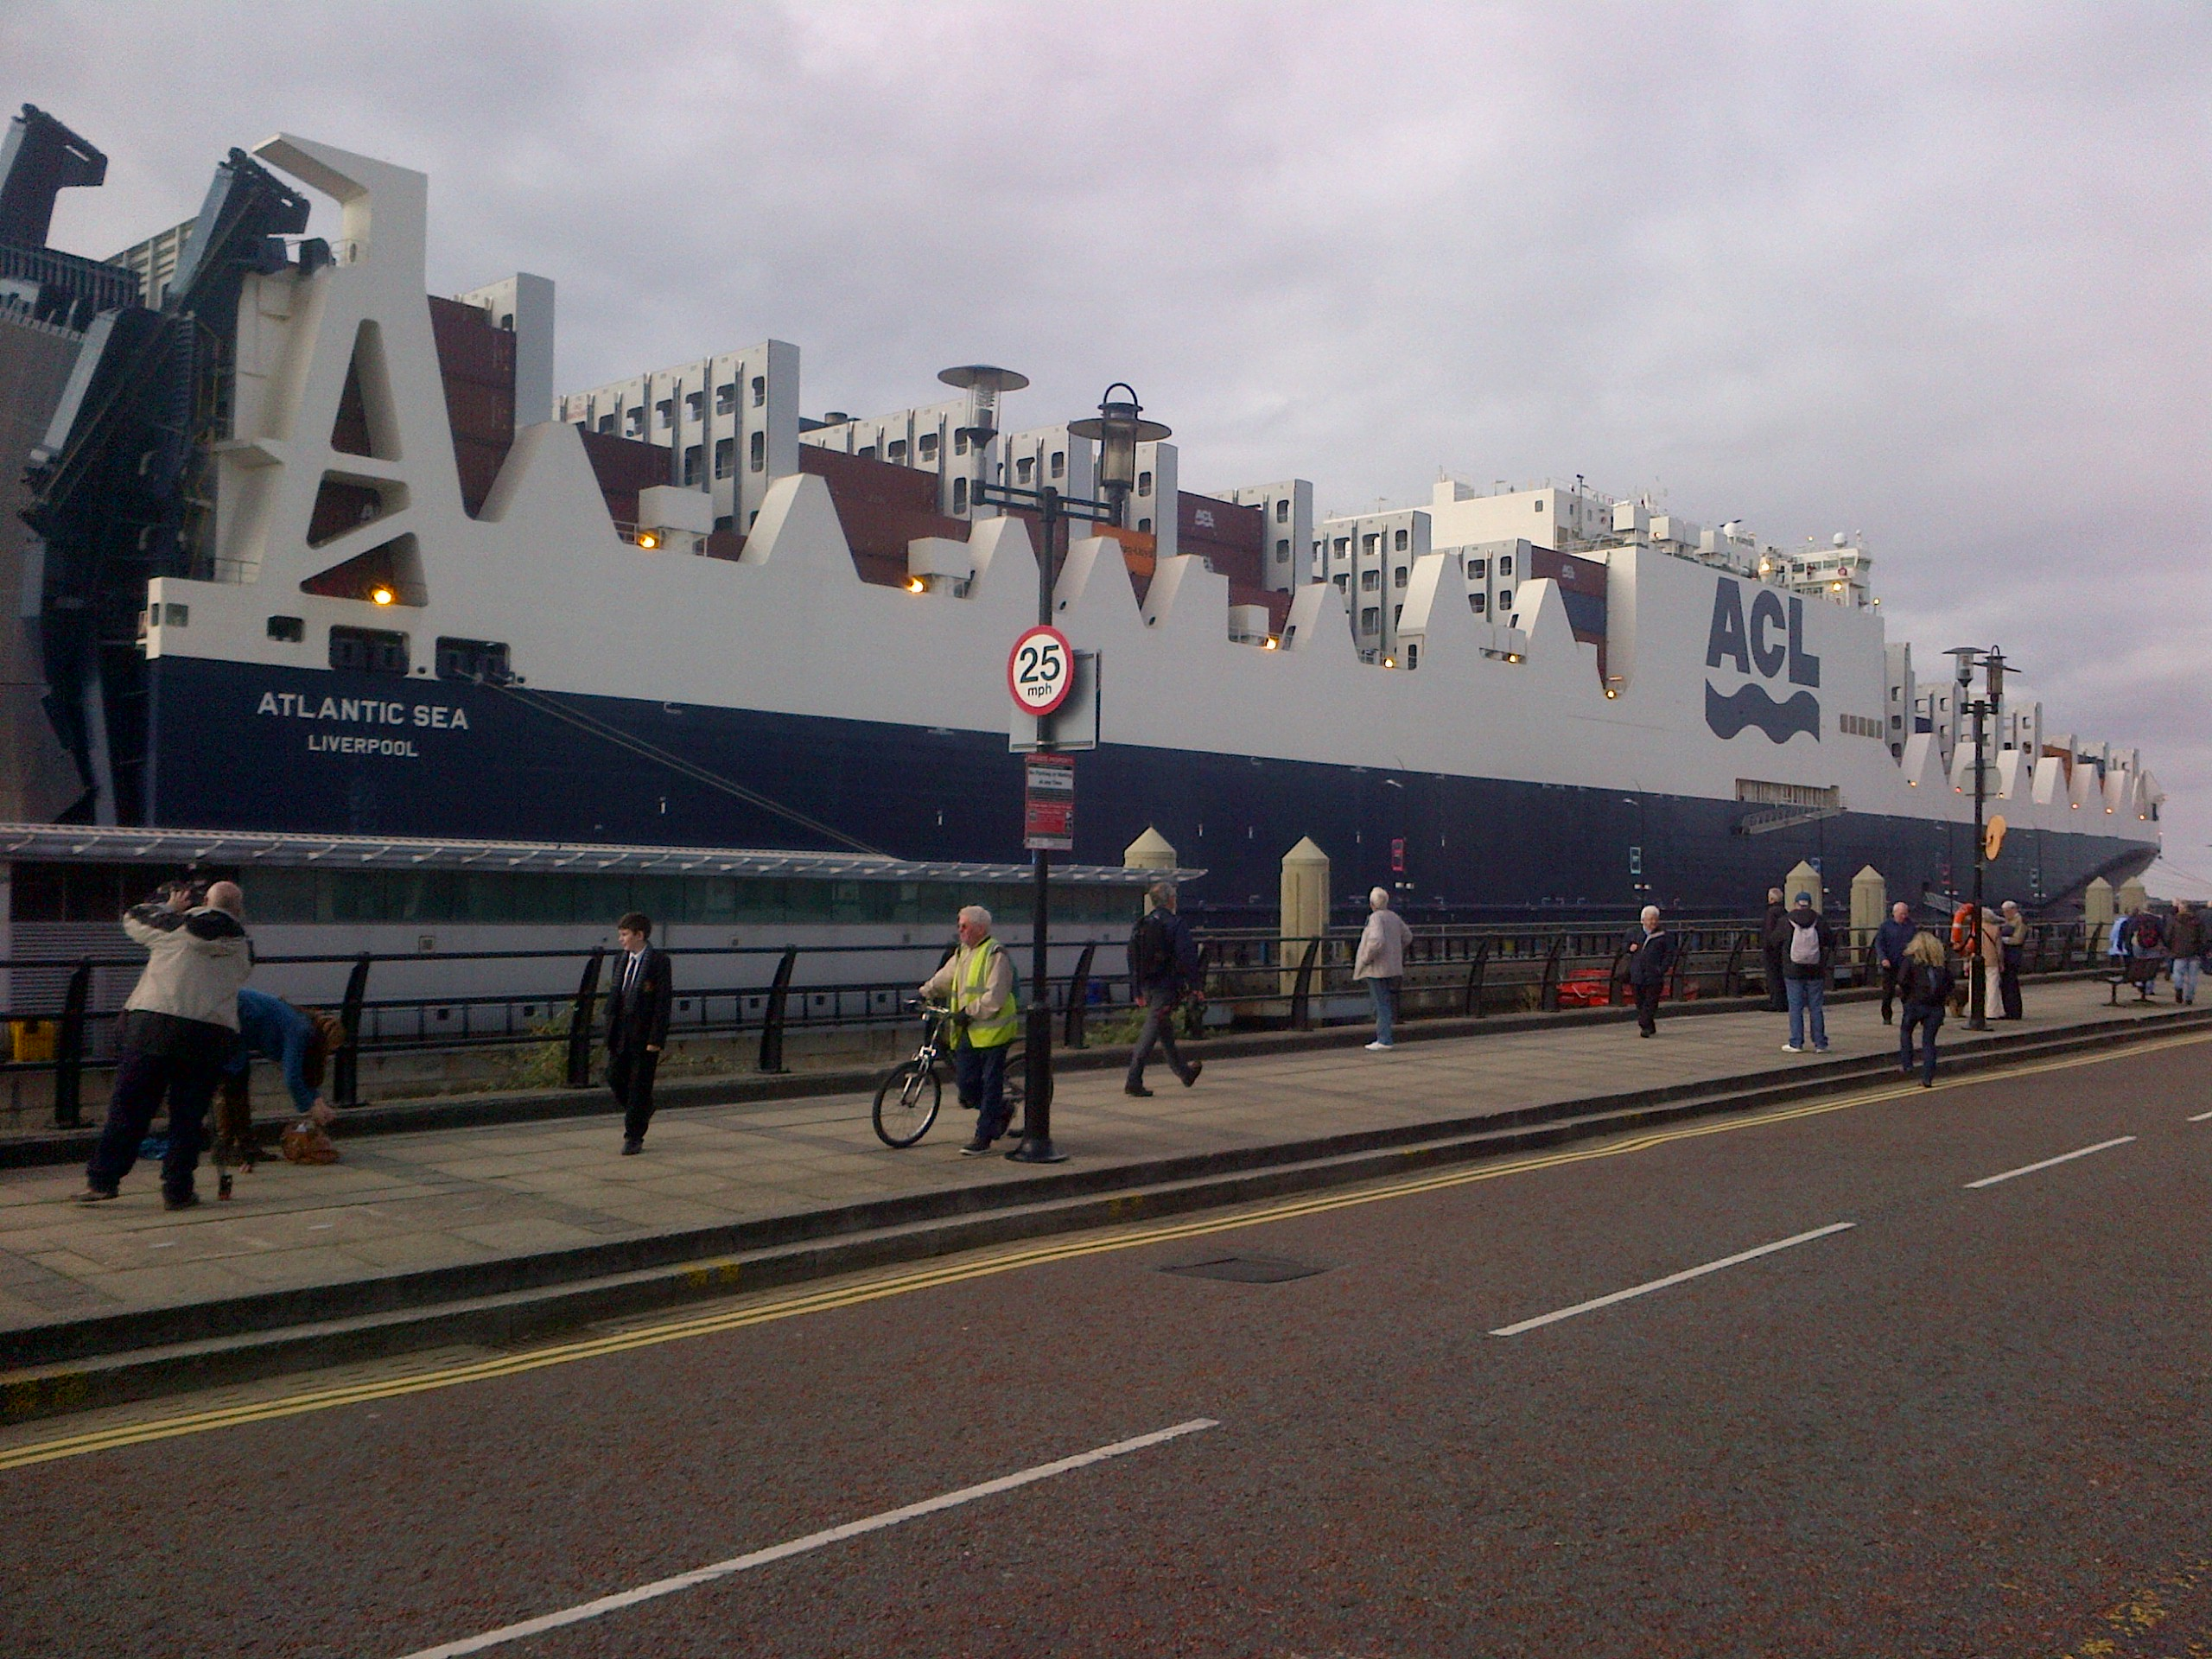 Cruise Liners Come Home To Liverpool Share The City Share The City - Cruise ships at greenock